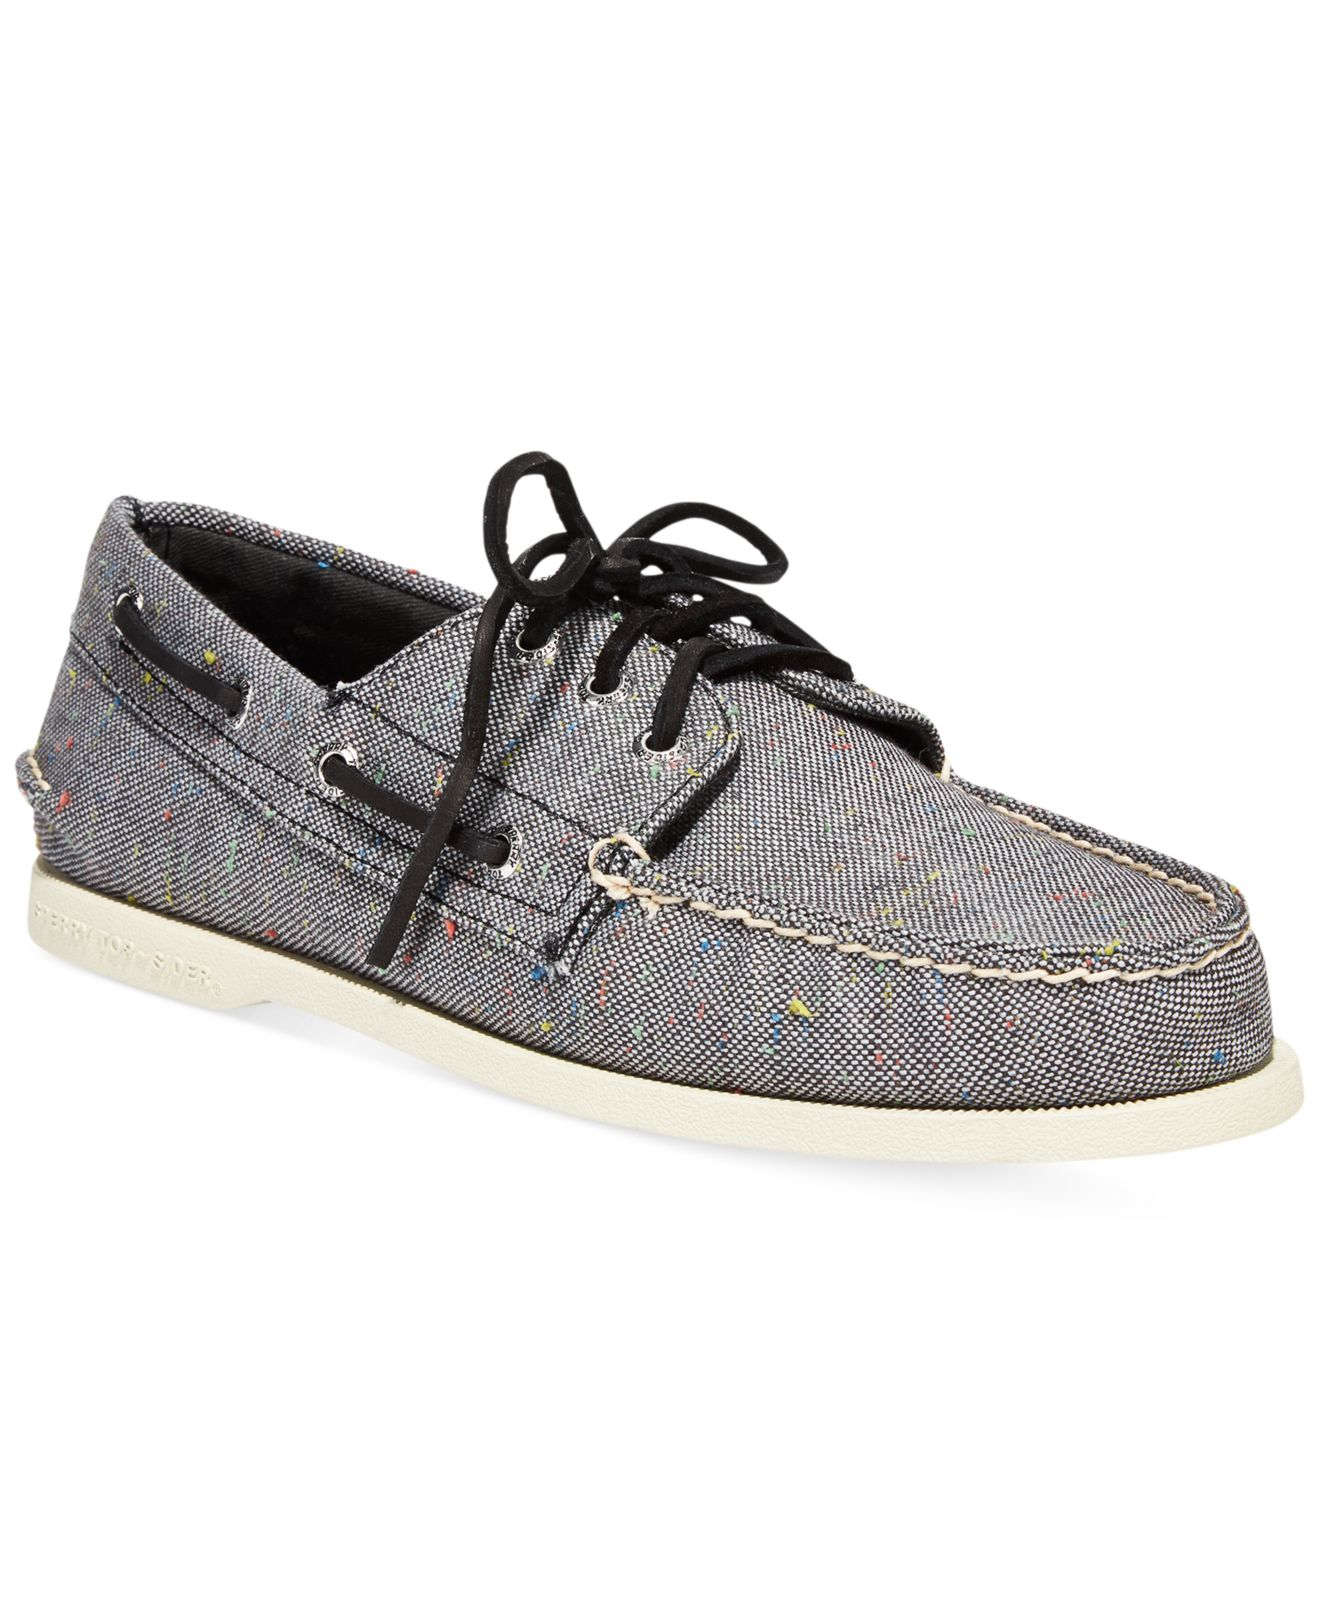 sperry top sider a o 3 eye fleck canvas boat shoes in gray